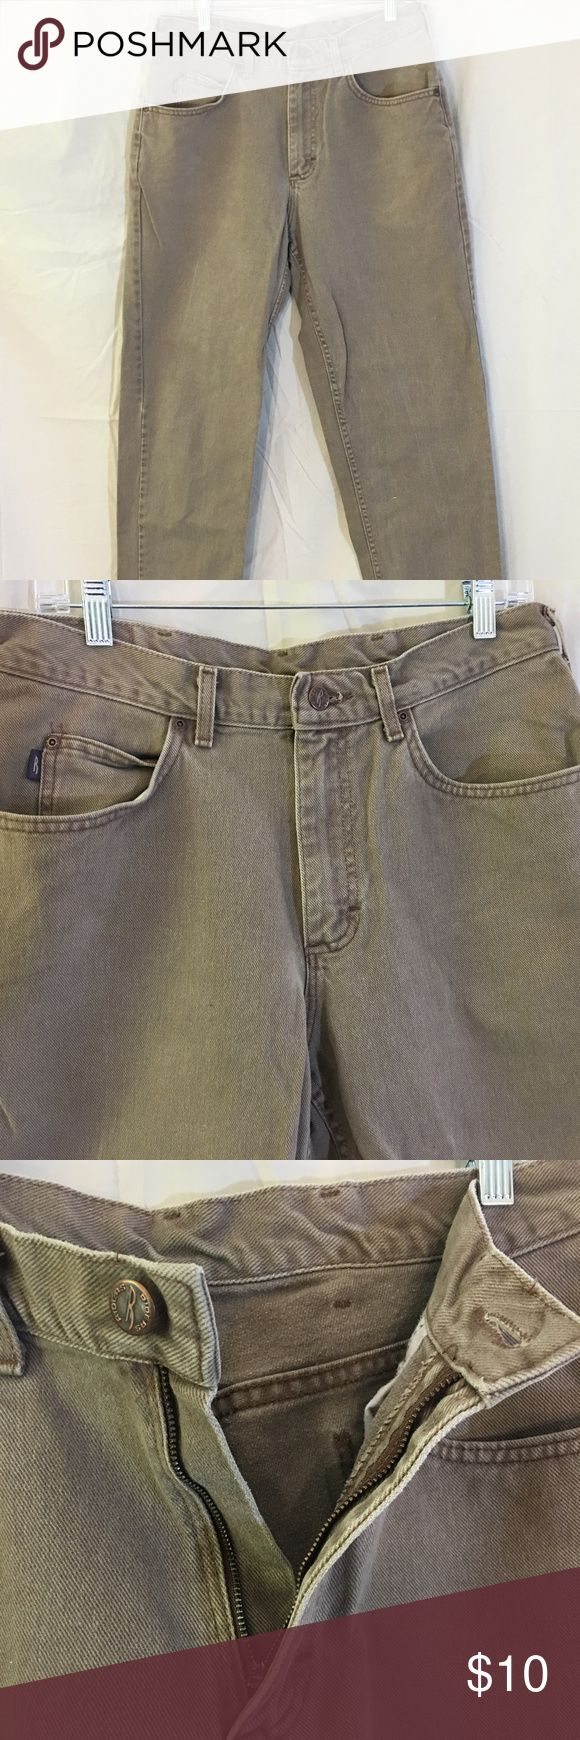 Denim Rider Tan Jeans Mens 34/30 Denim Rider Tan Jeans 34/30  •Size: 34/30   •Material: 100% cotton •Style: straight leg, classsic jeans regular cuff and waist fir. •In good previously owned condition. Riders by Lee Jeans Straight